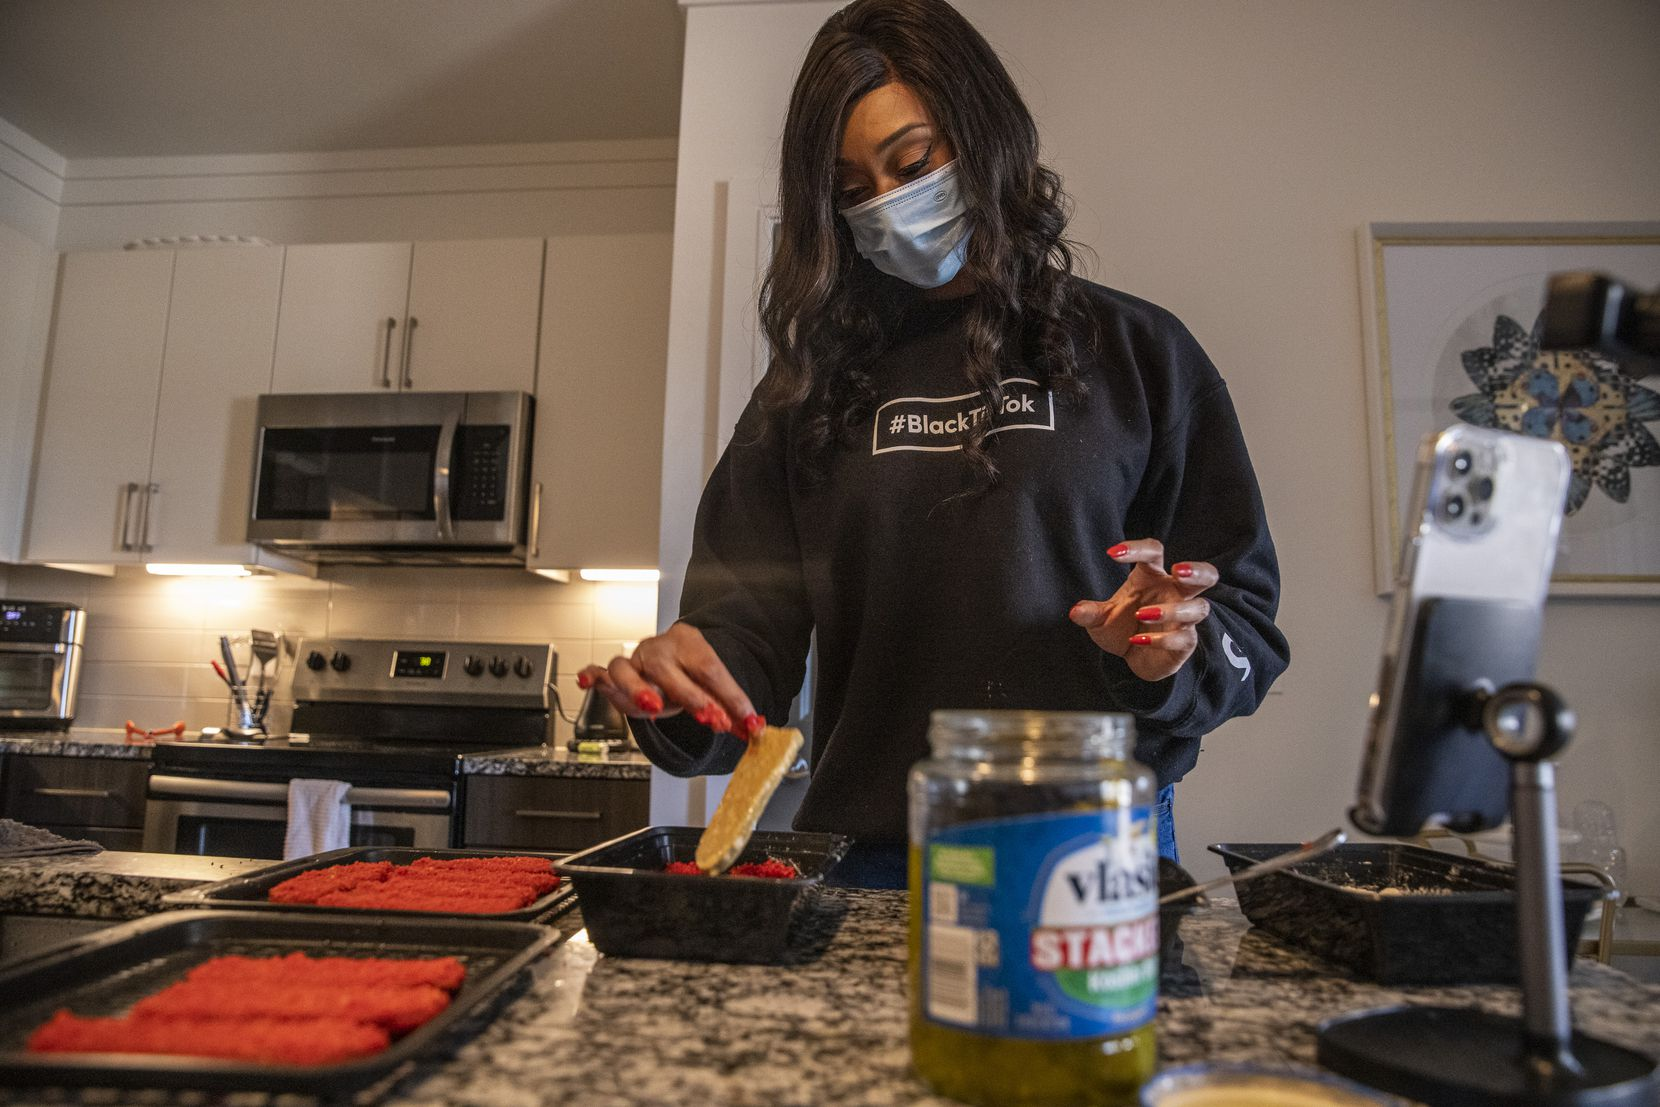 NaTasha Peck, creator of the YouTube channel ToshPointFro, creates Hot Cheetos fried pickle slices at her home in Frisco.